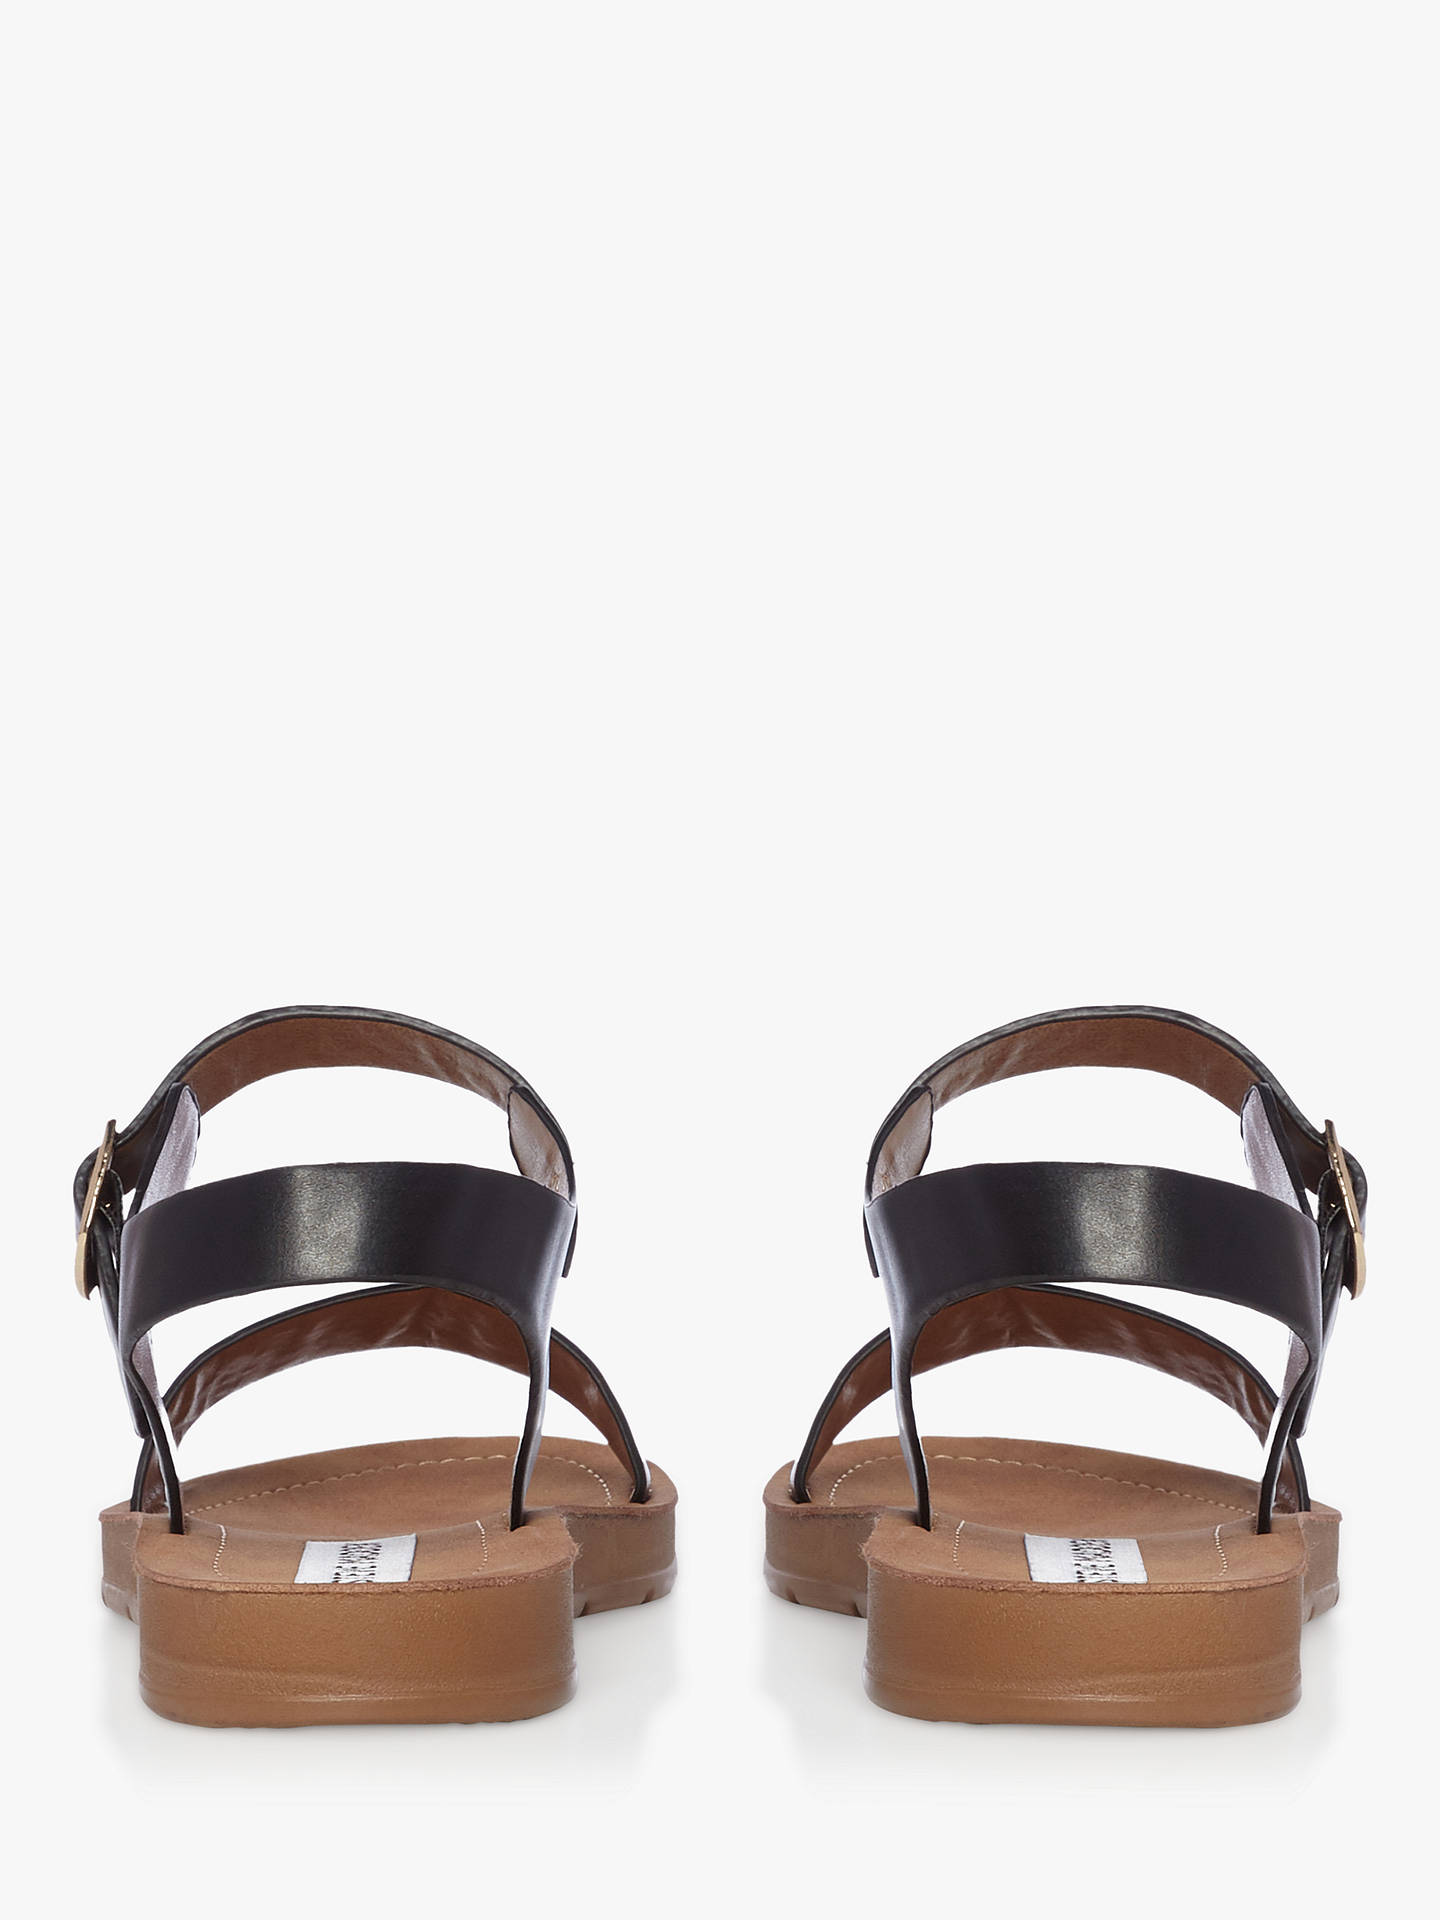 c12743b5a01 Steve Madden Probable Two Part Flat Sandals at John Lewis & Partners